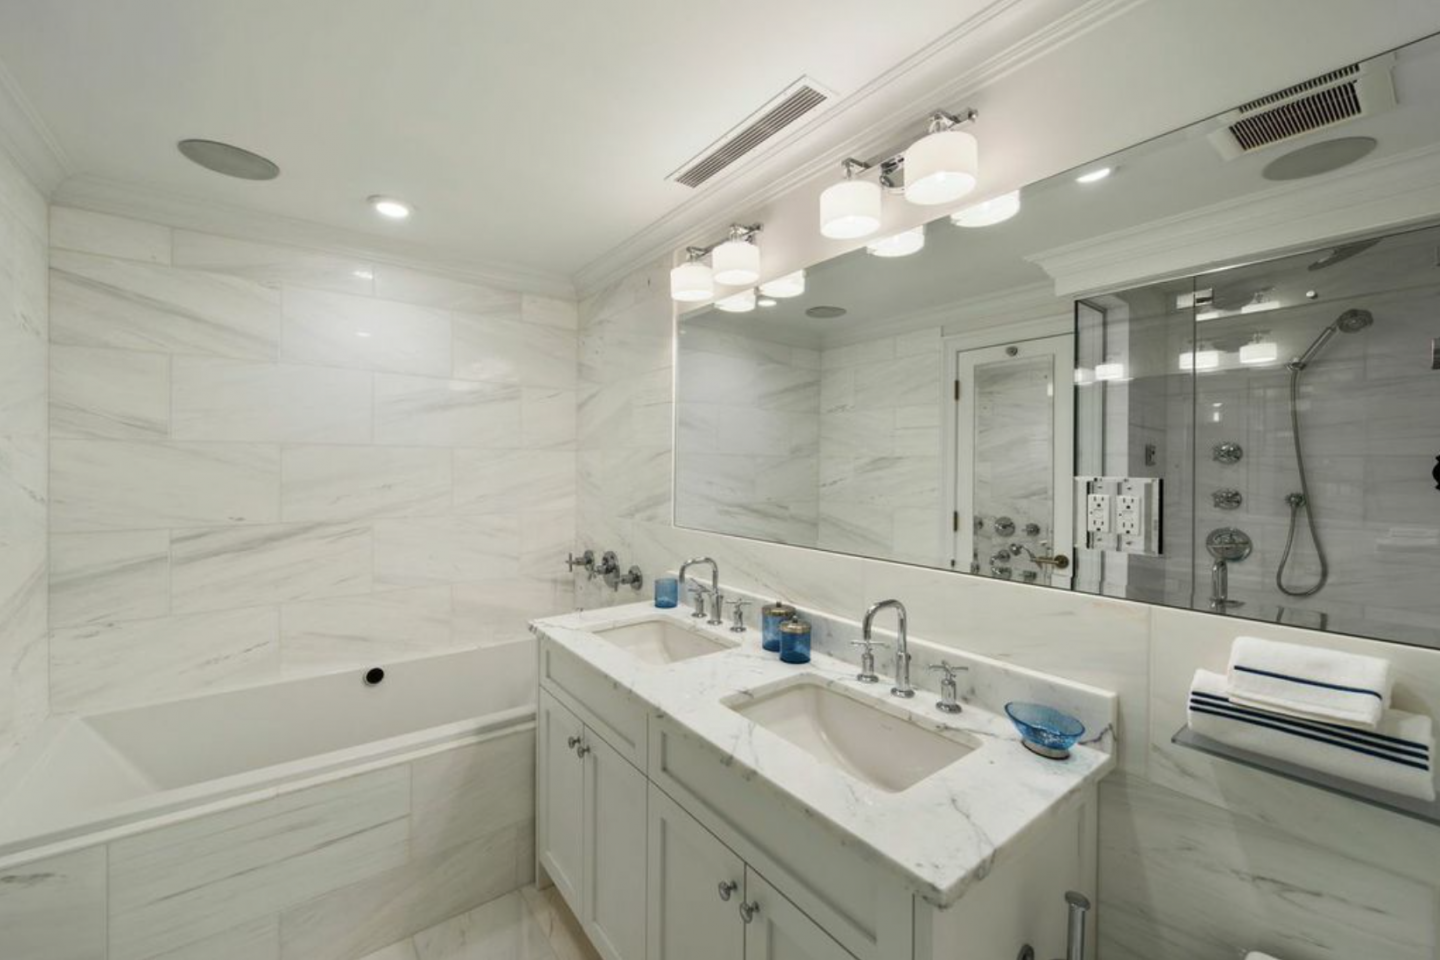 Bathrooms at The Justin boast radiant heat flooring and Bianco Carrara marble.